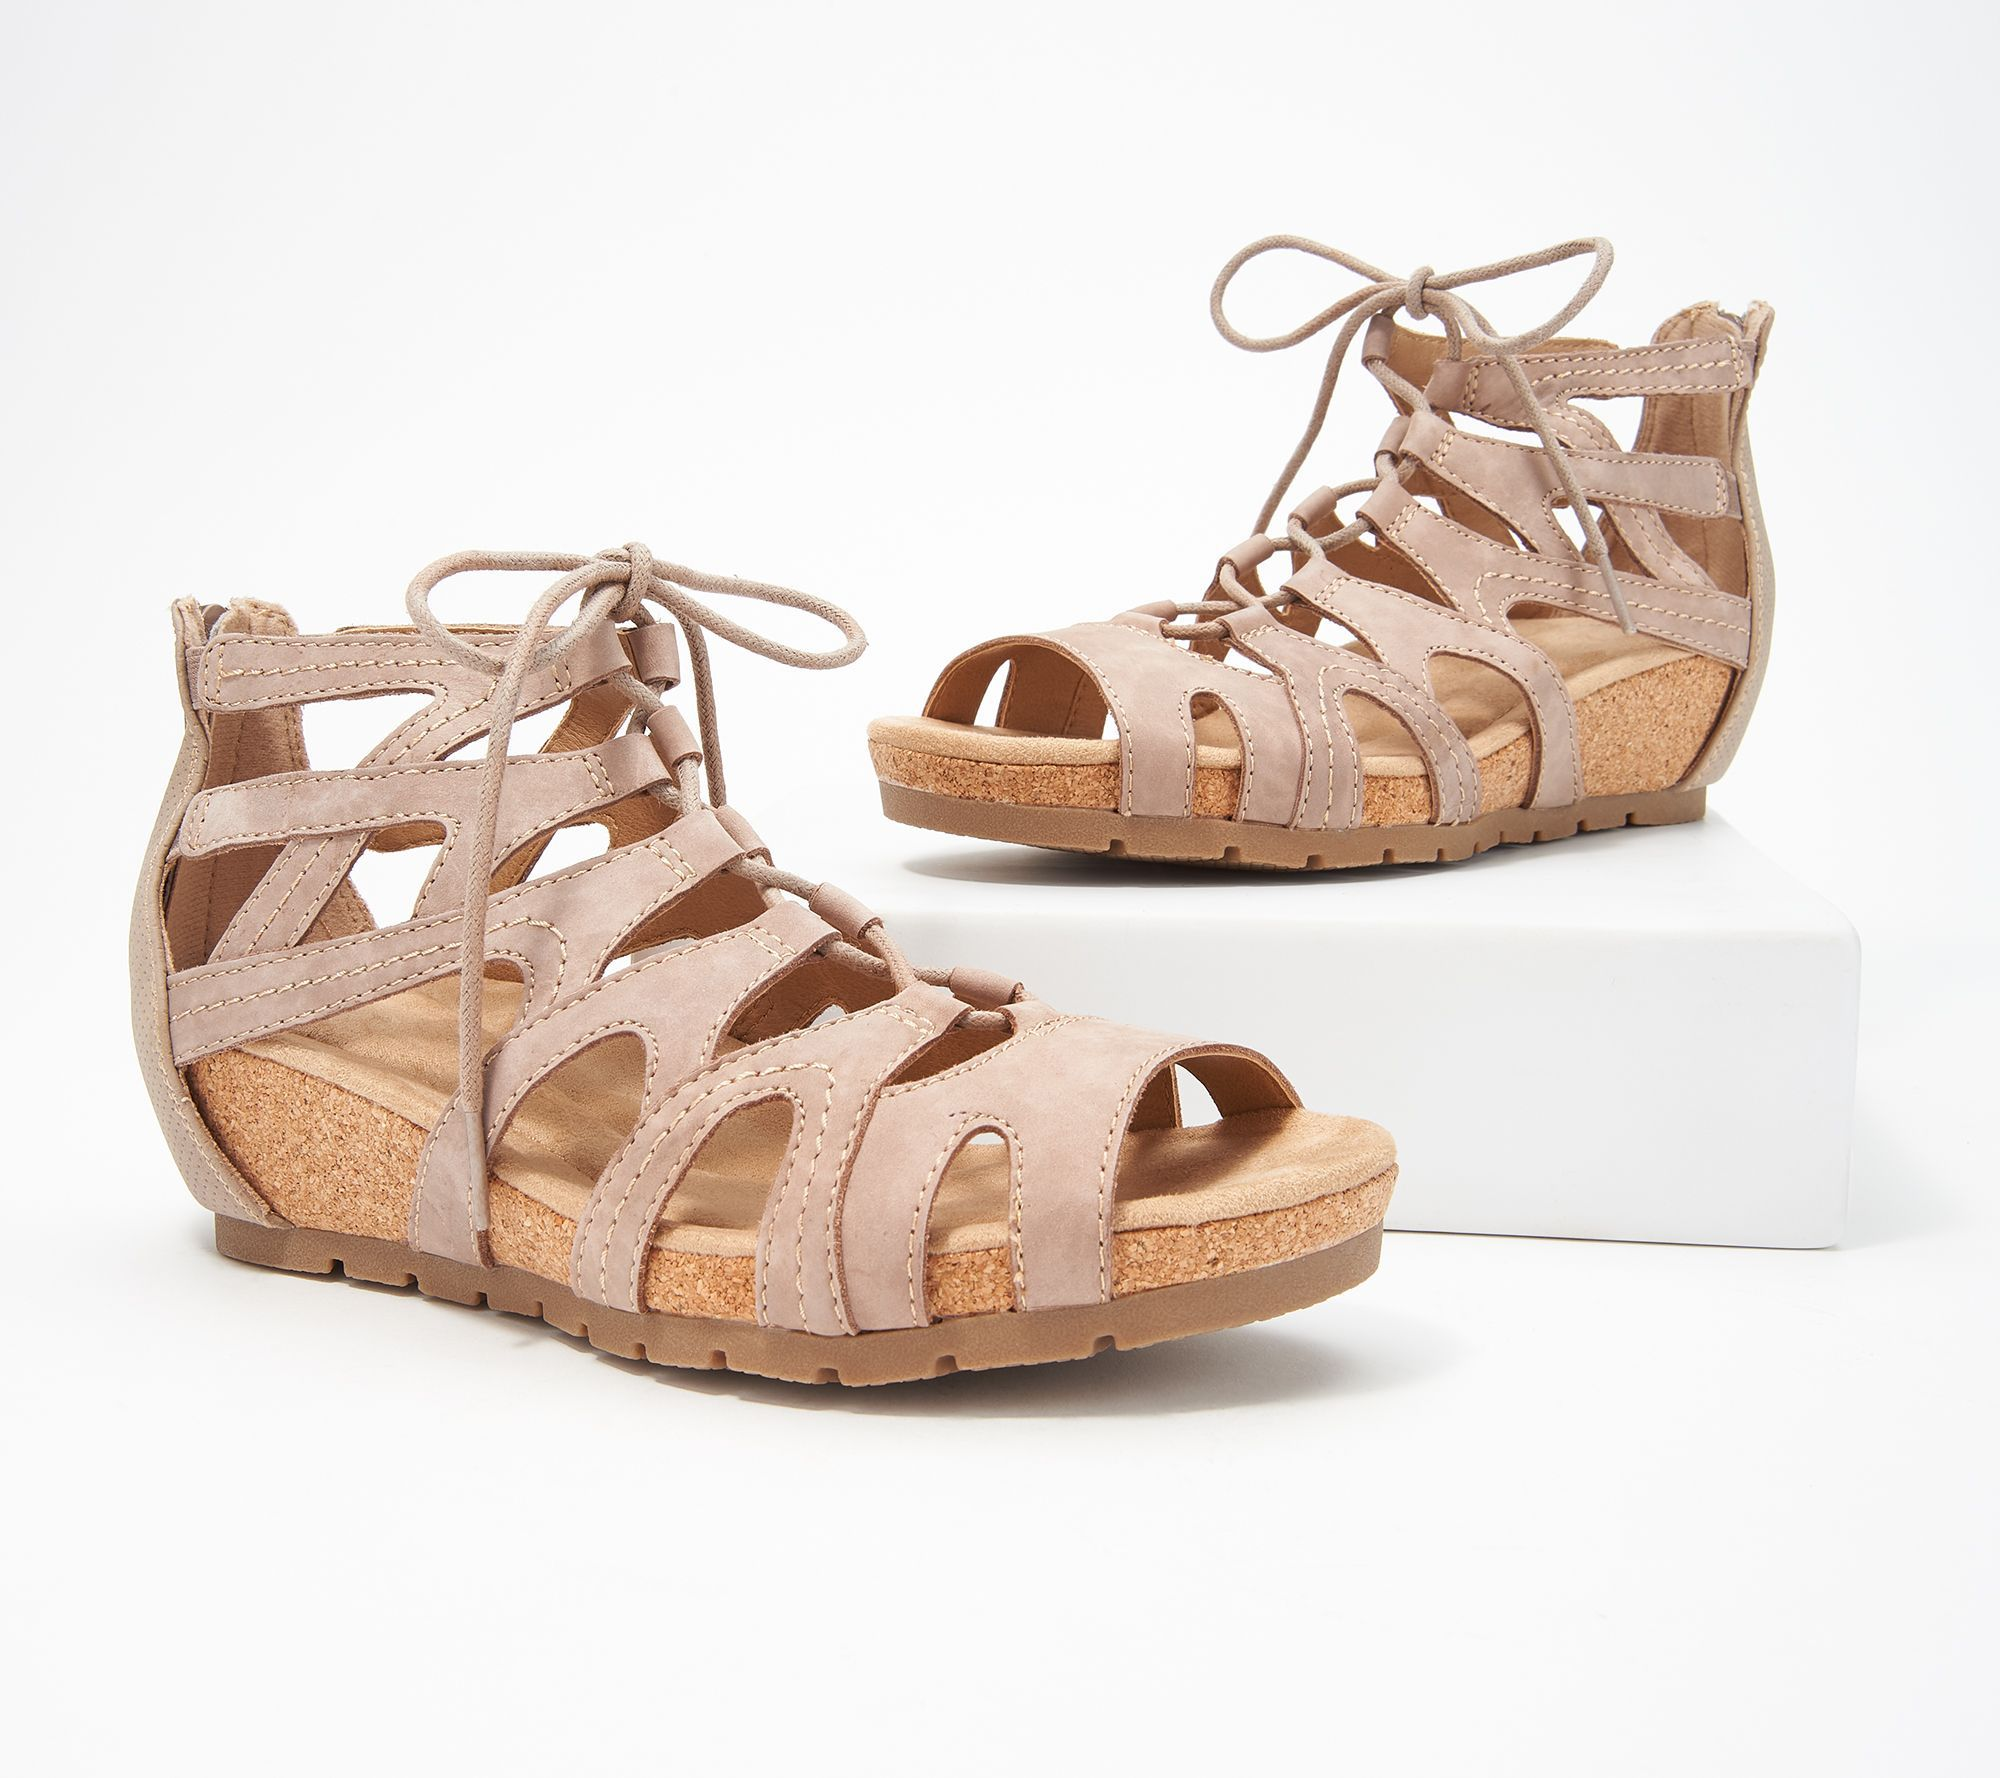 741ee4887d41 Earth Origins Leather Lace-Up Wedges -Kendra Kamilla - Page 1 — QVC.com